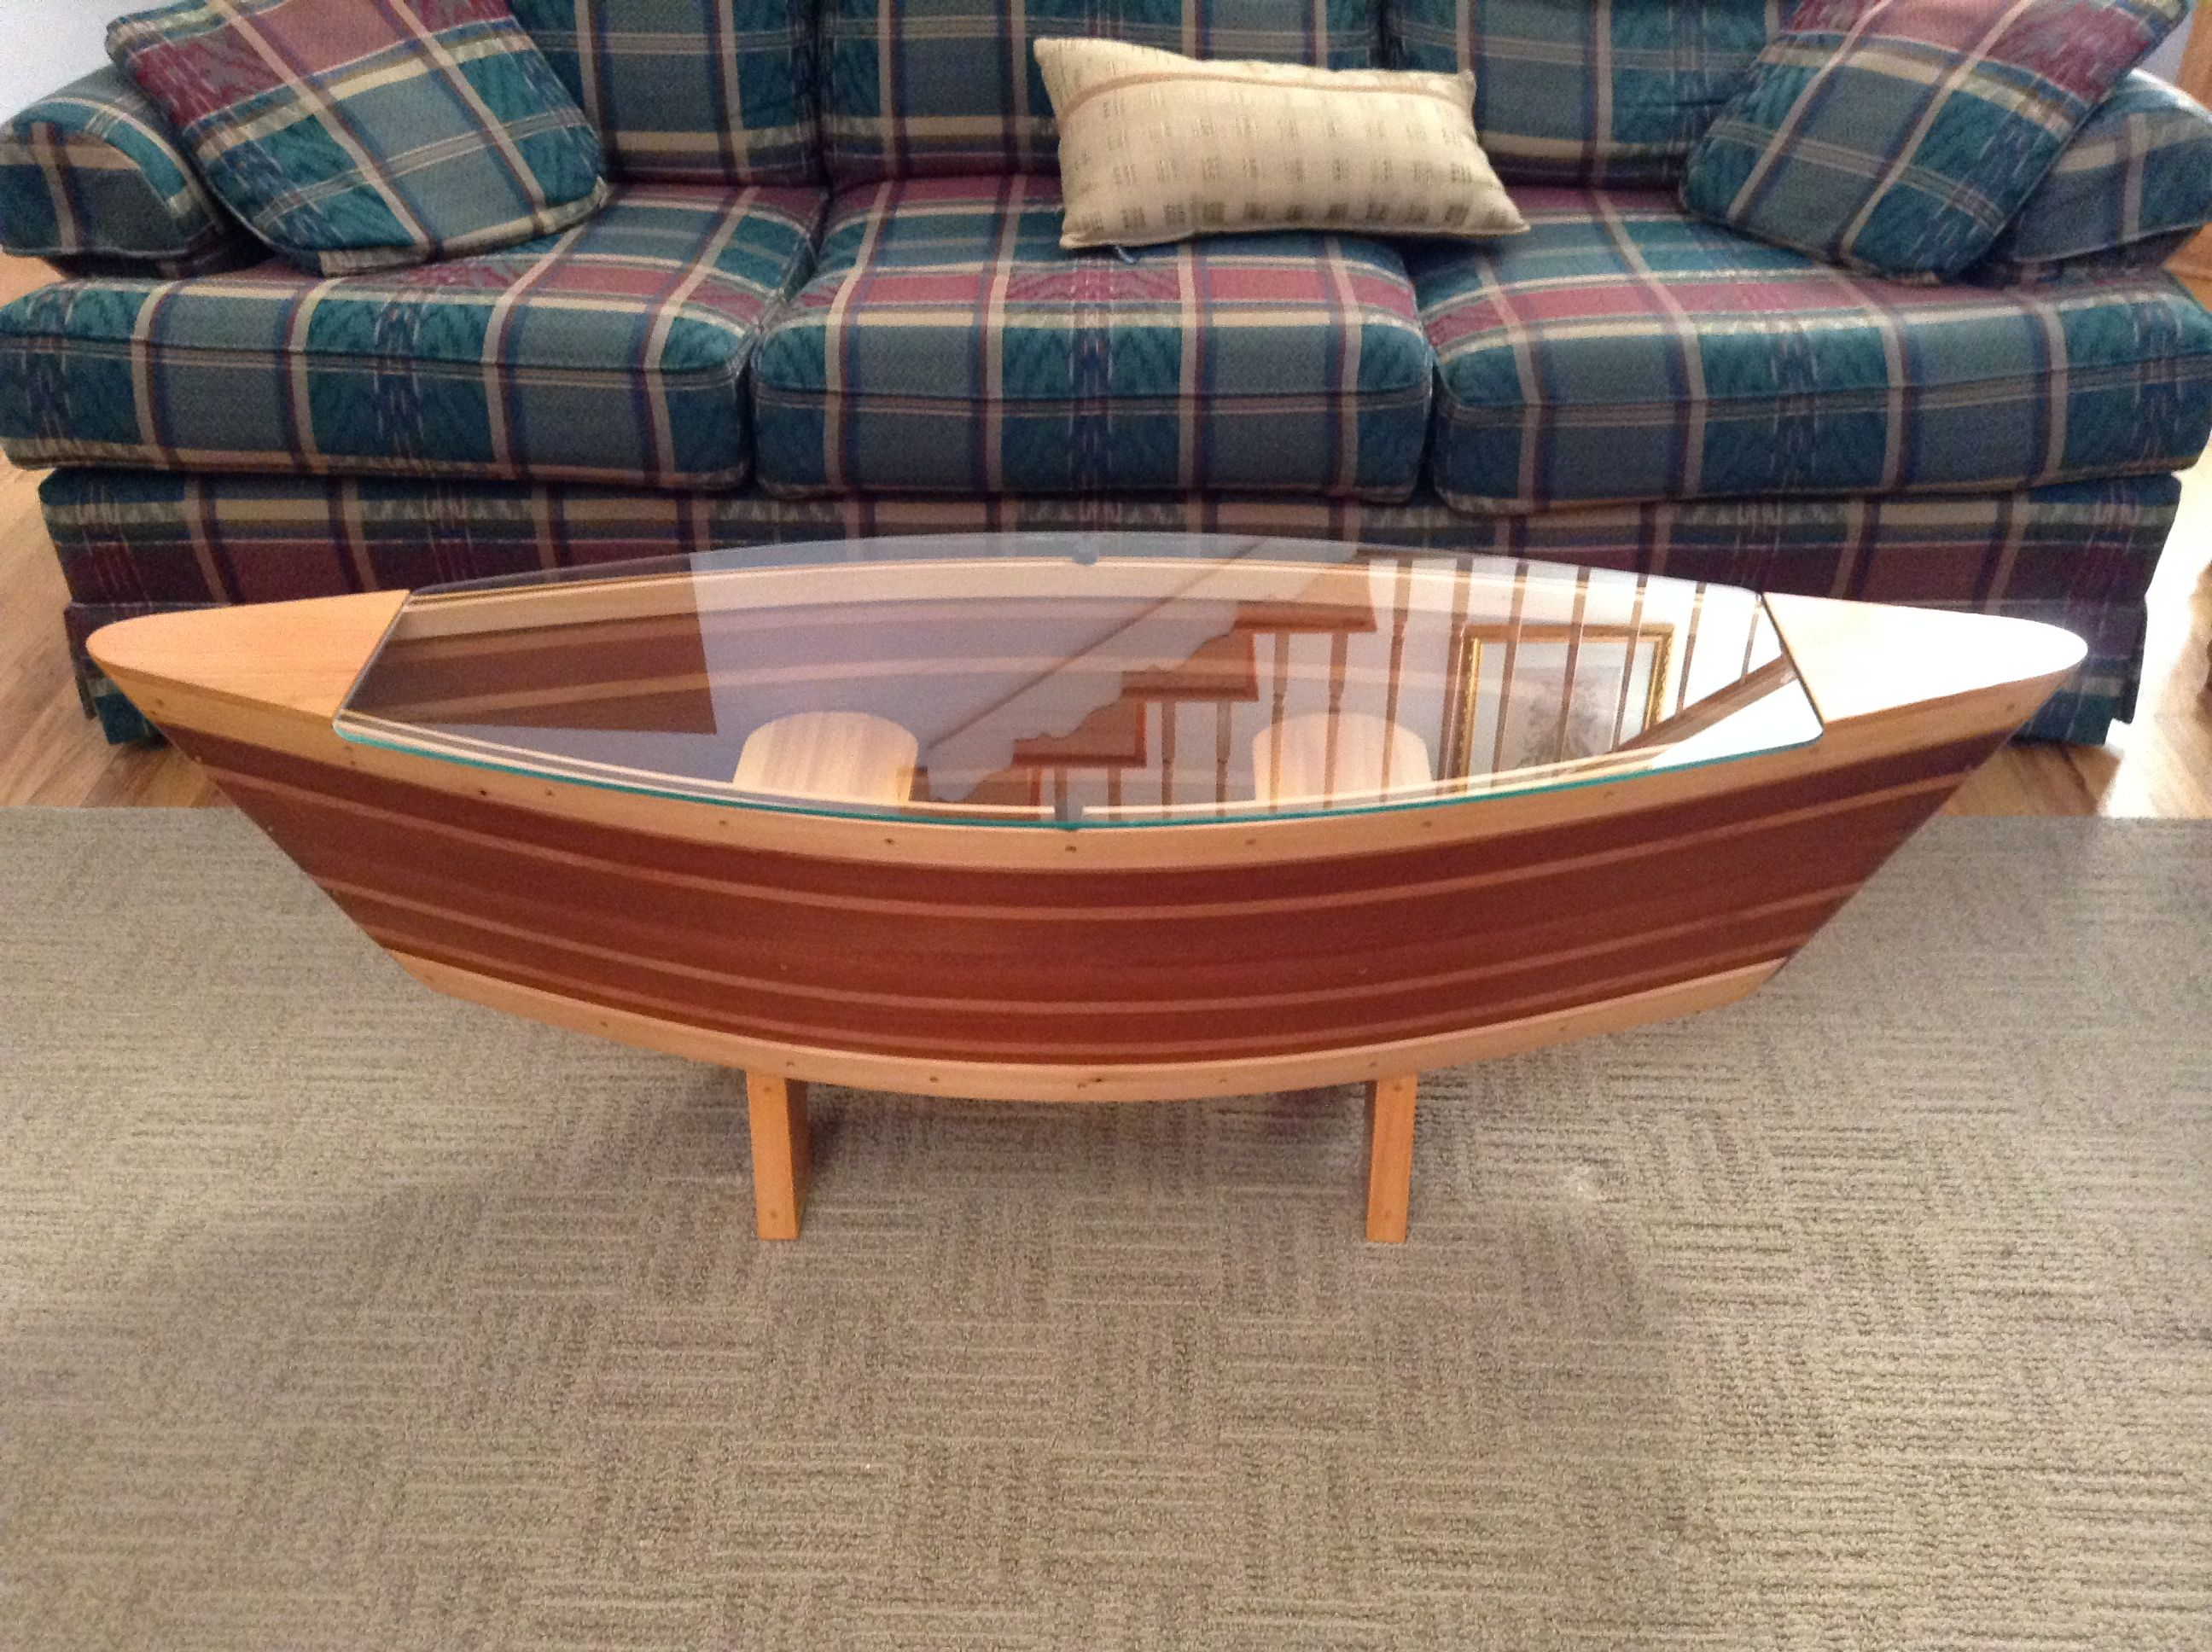 Canoe Coffee Table Boat Shelf 5ft Shaped Sofa Solid Redwood And Cherry Cabin Décor Lake House 460 00